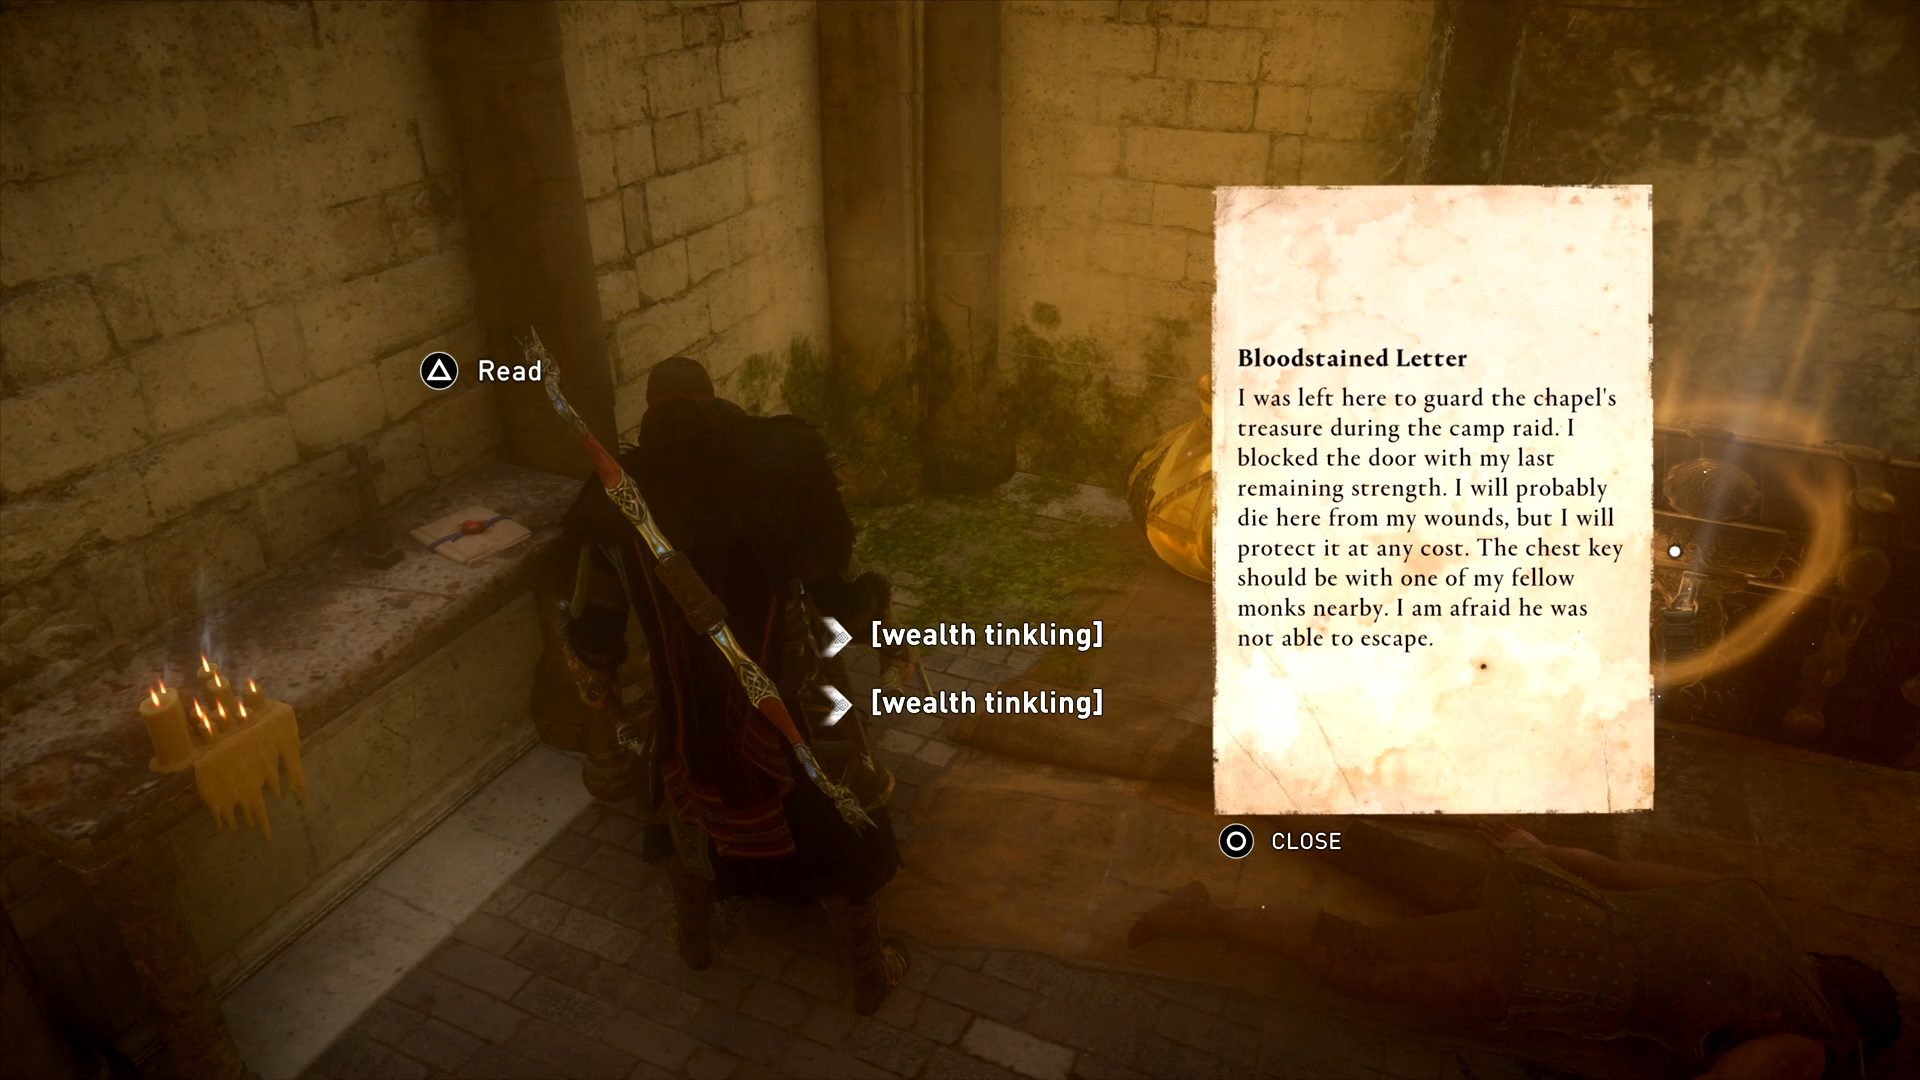 Assassin's Creed Valhalla Cent Bloodstained Letter